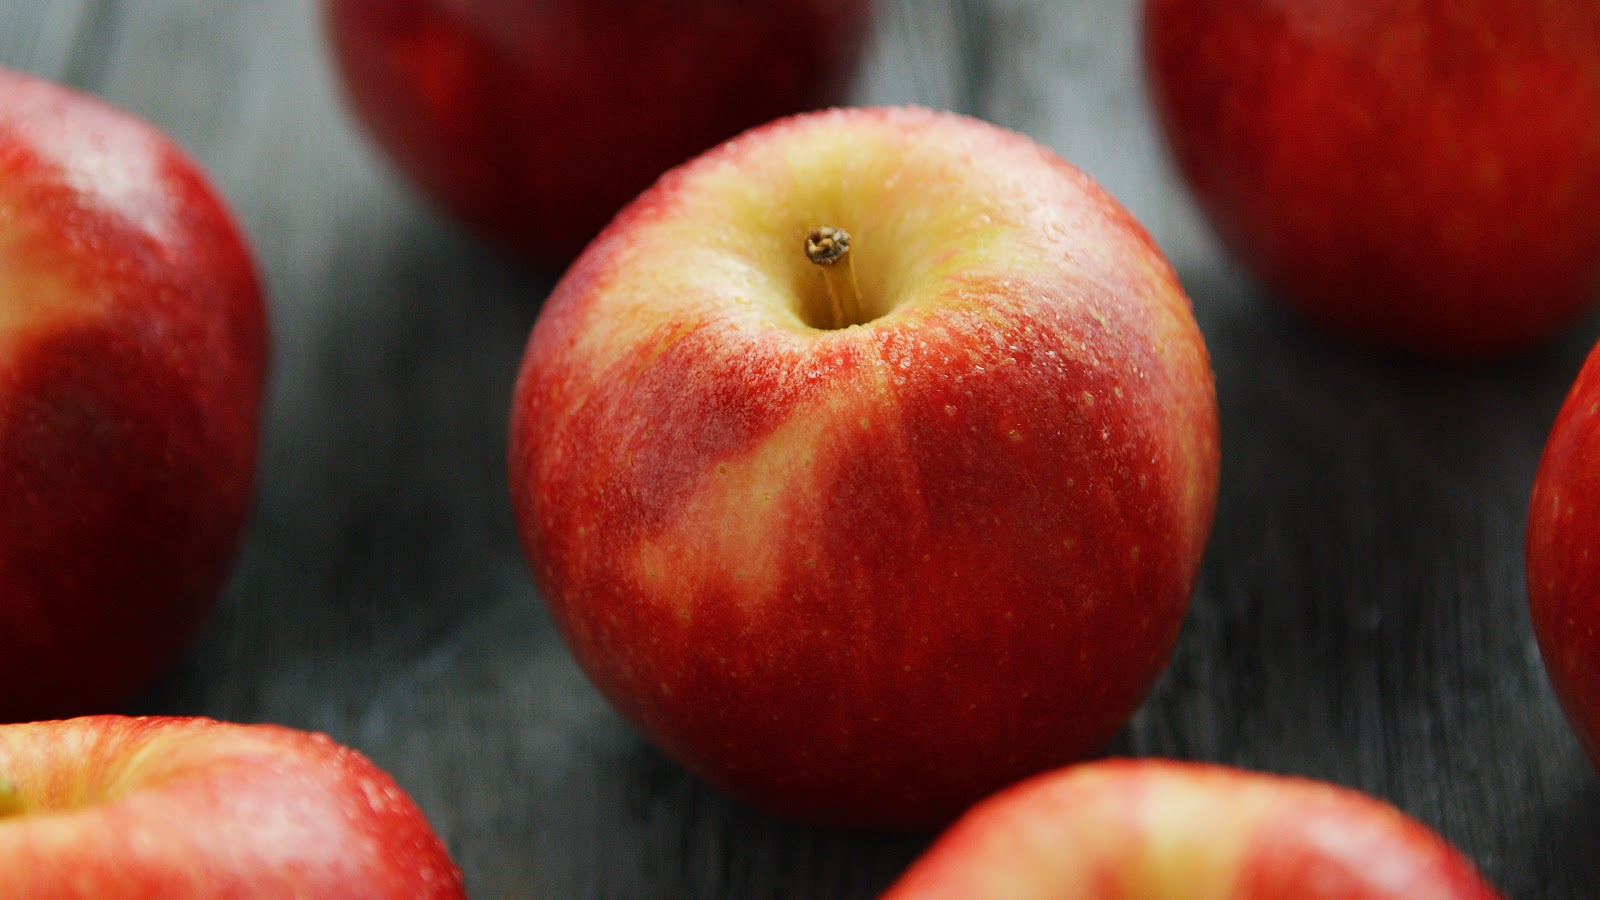 ripe-apples-on-table-BAD3NLY (1).jpg